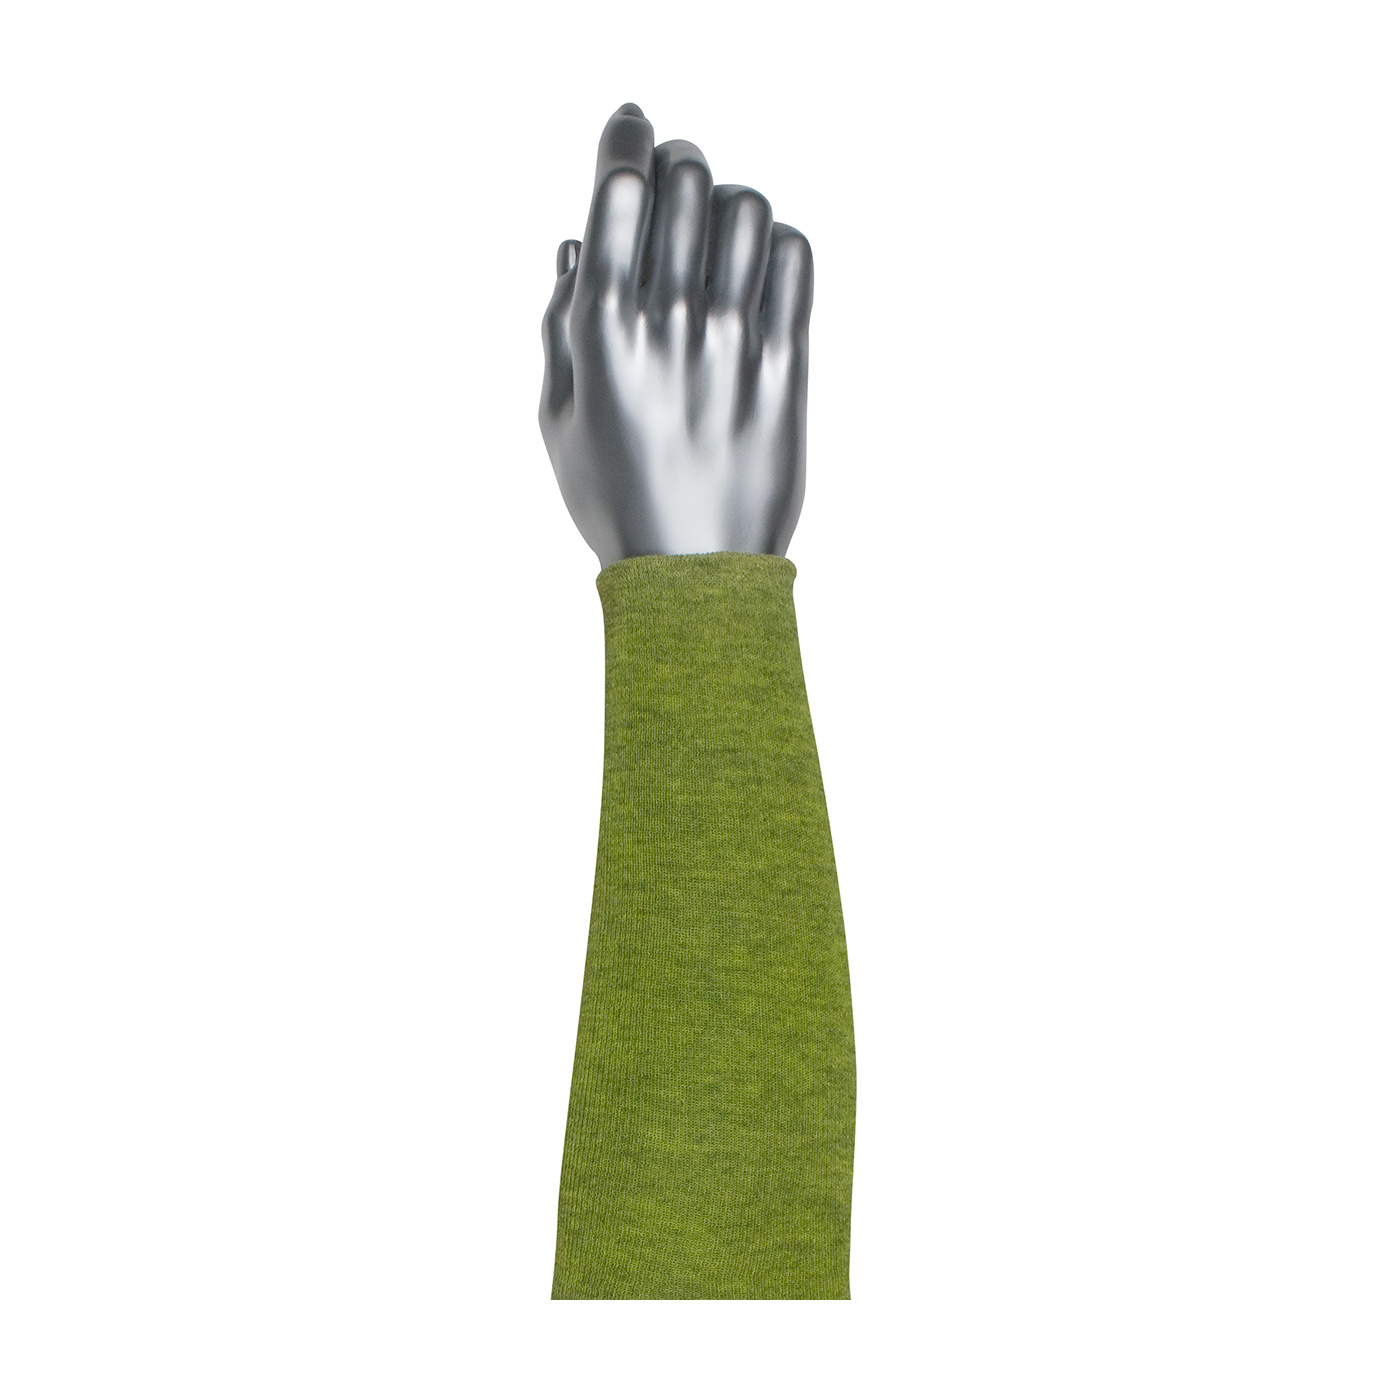 ACP Kevlar Sleeves | Protective Industrial Products